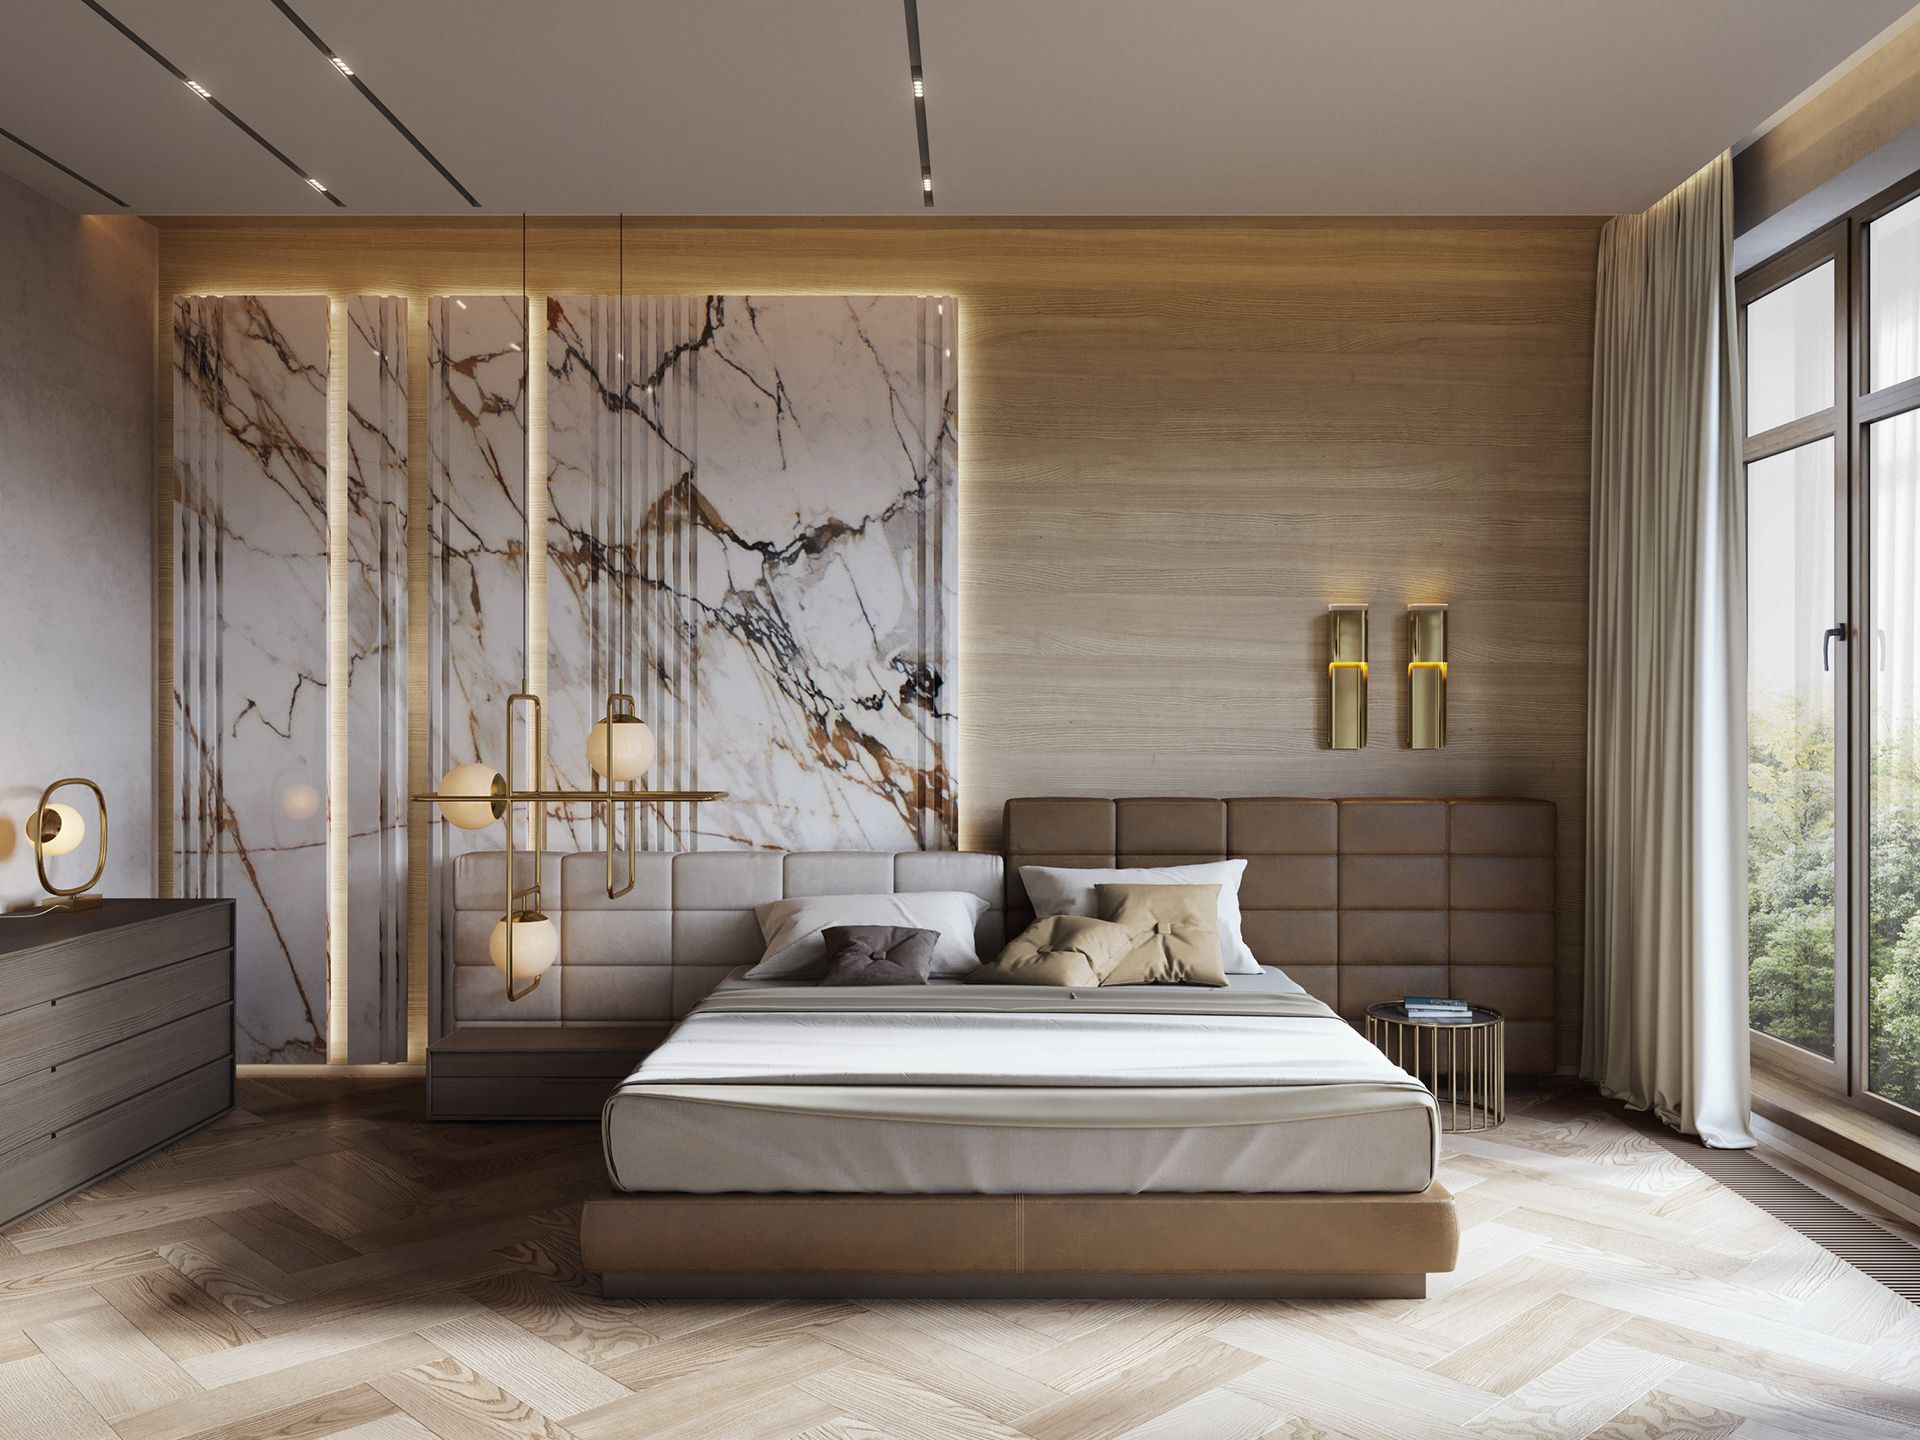 de de the first line apartment on behance luxury bedroom rh pinterest com